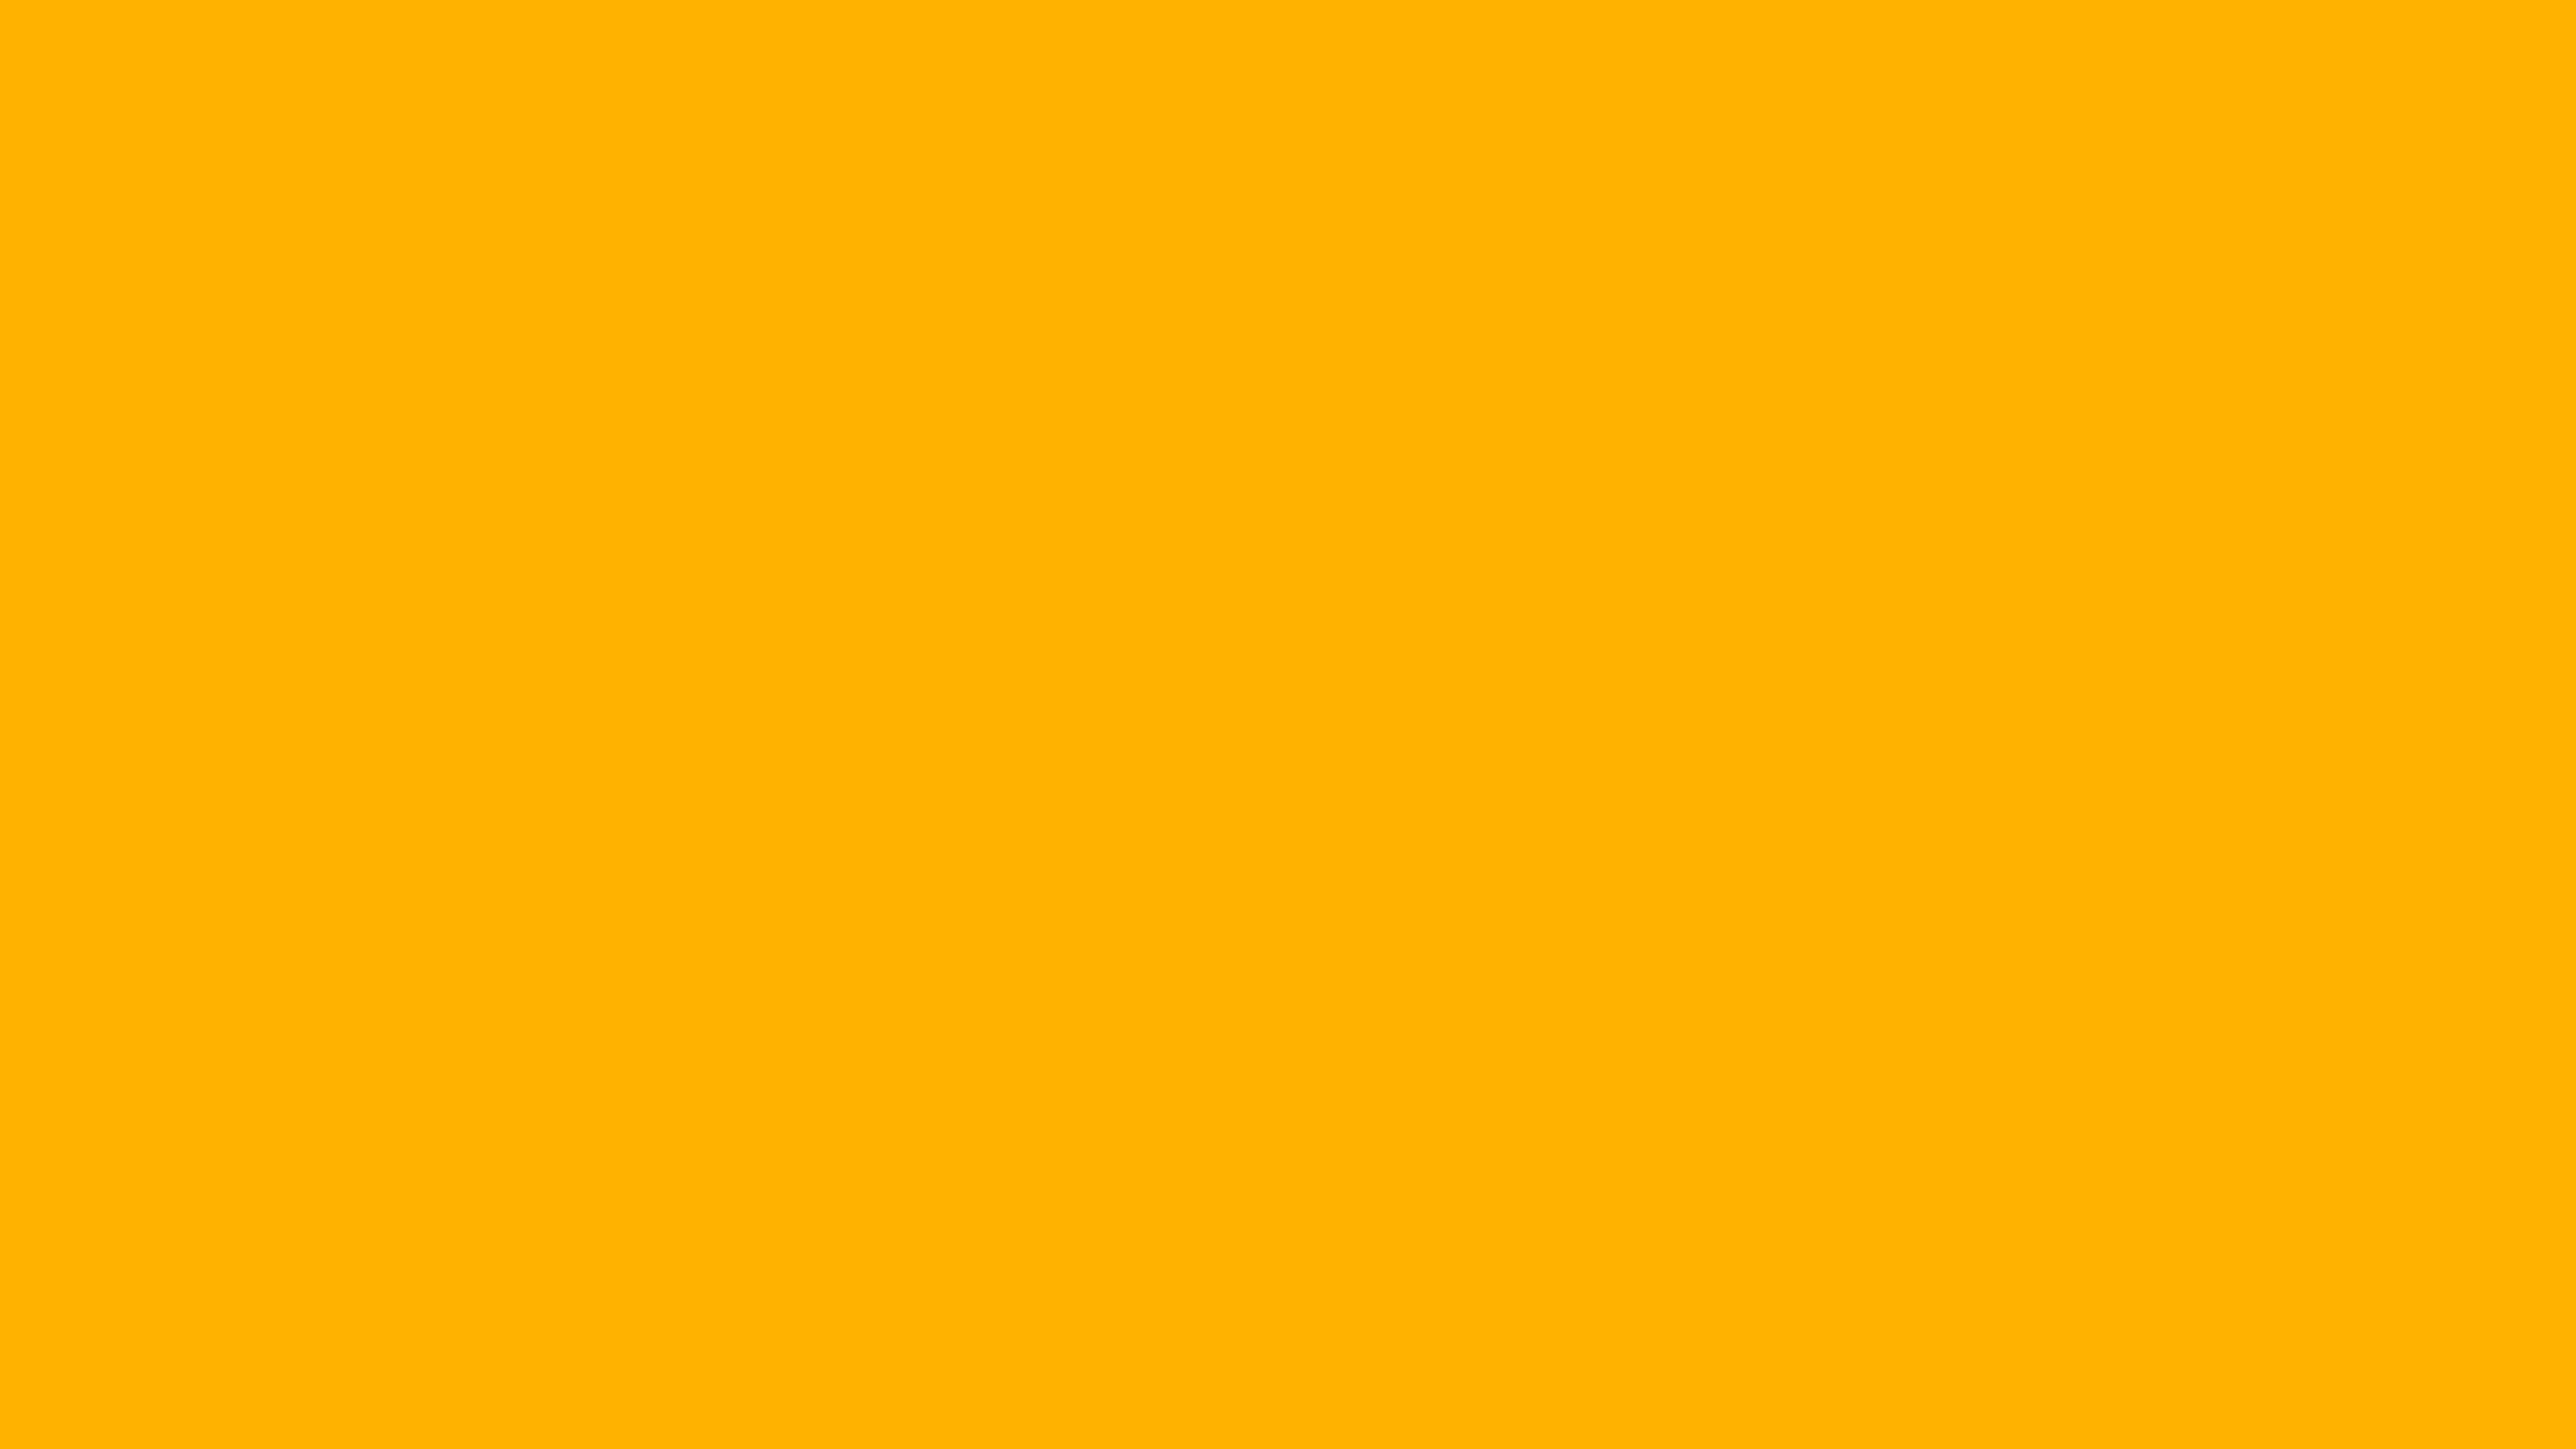 3840x2160 UCLA Gold Solid Color Background